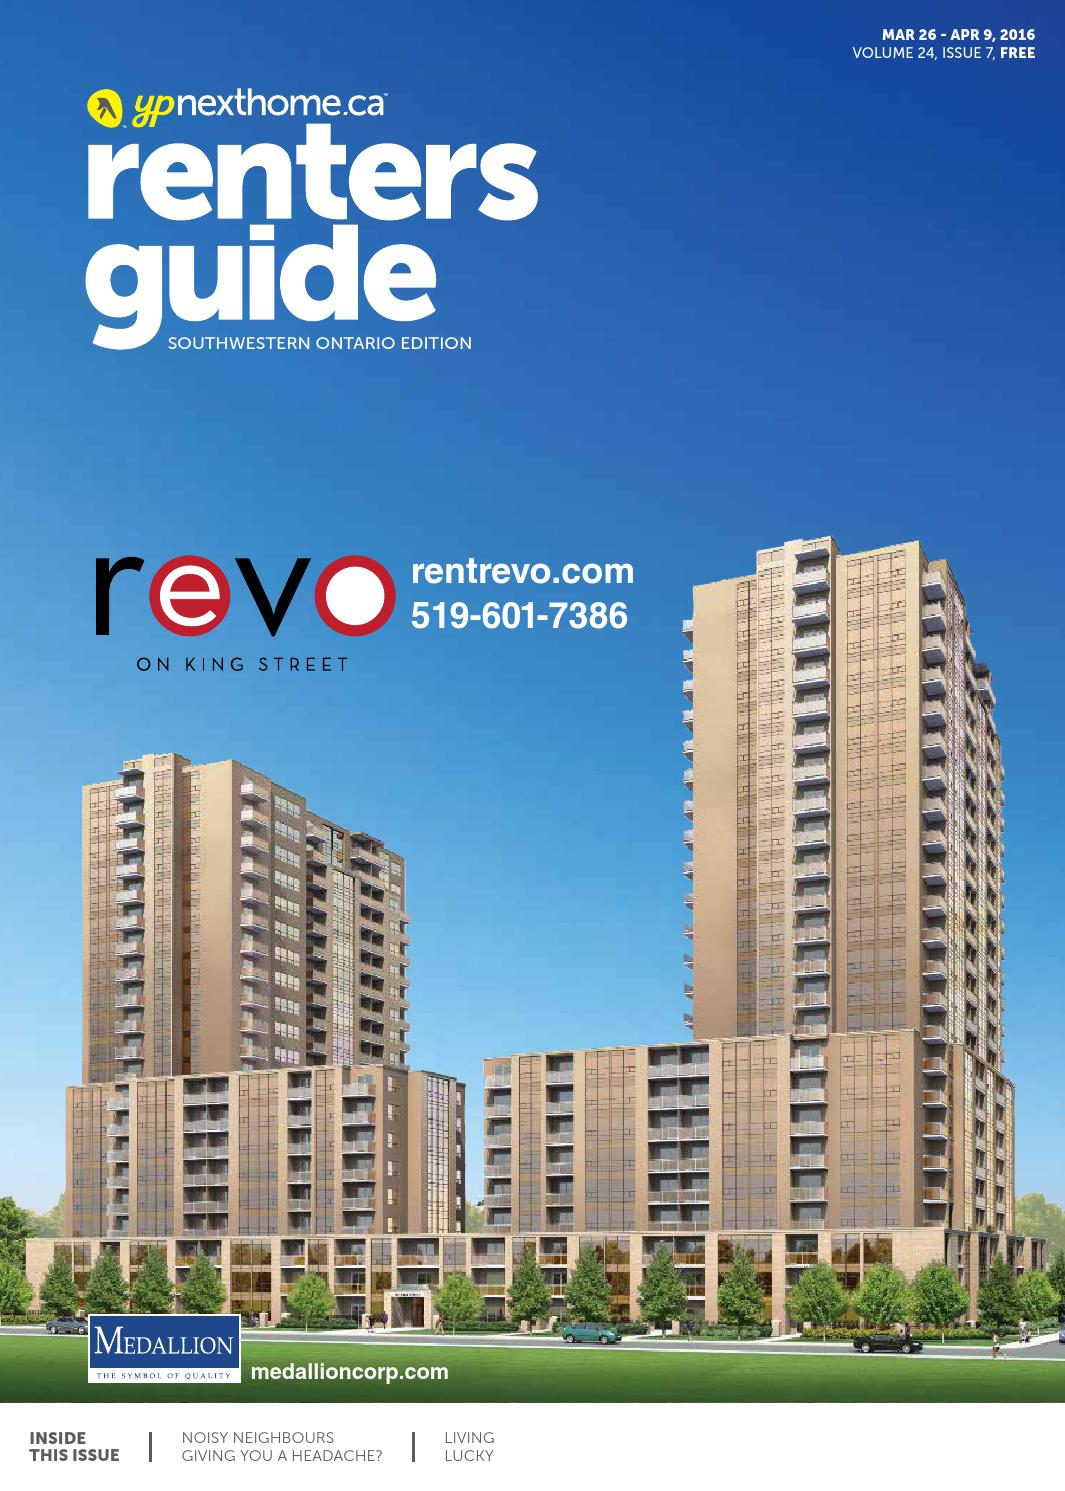 Southwestern Ontario Renters Guide - 26 Mar, 2016 by NextHome - issuu